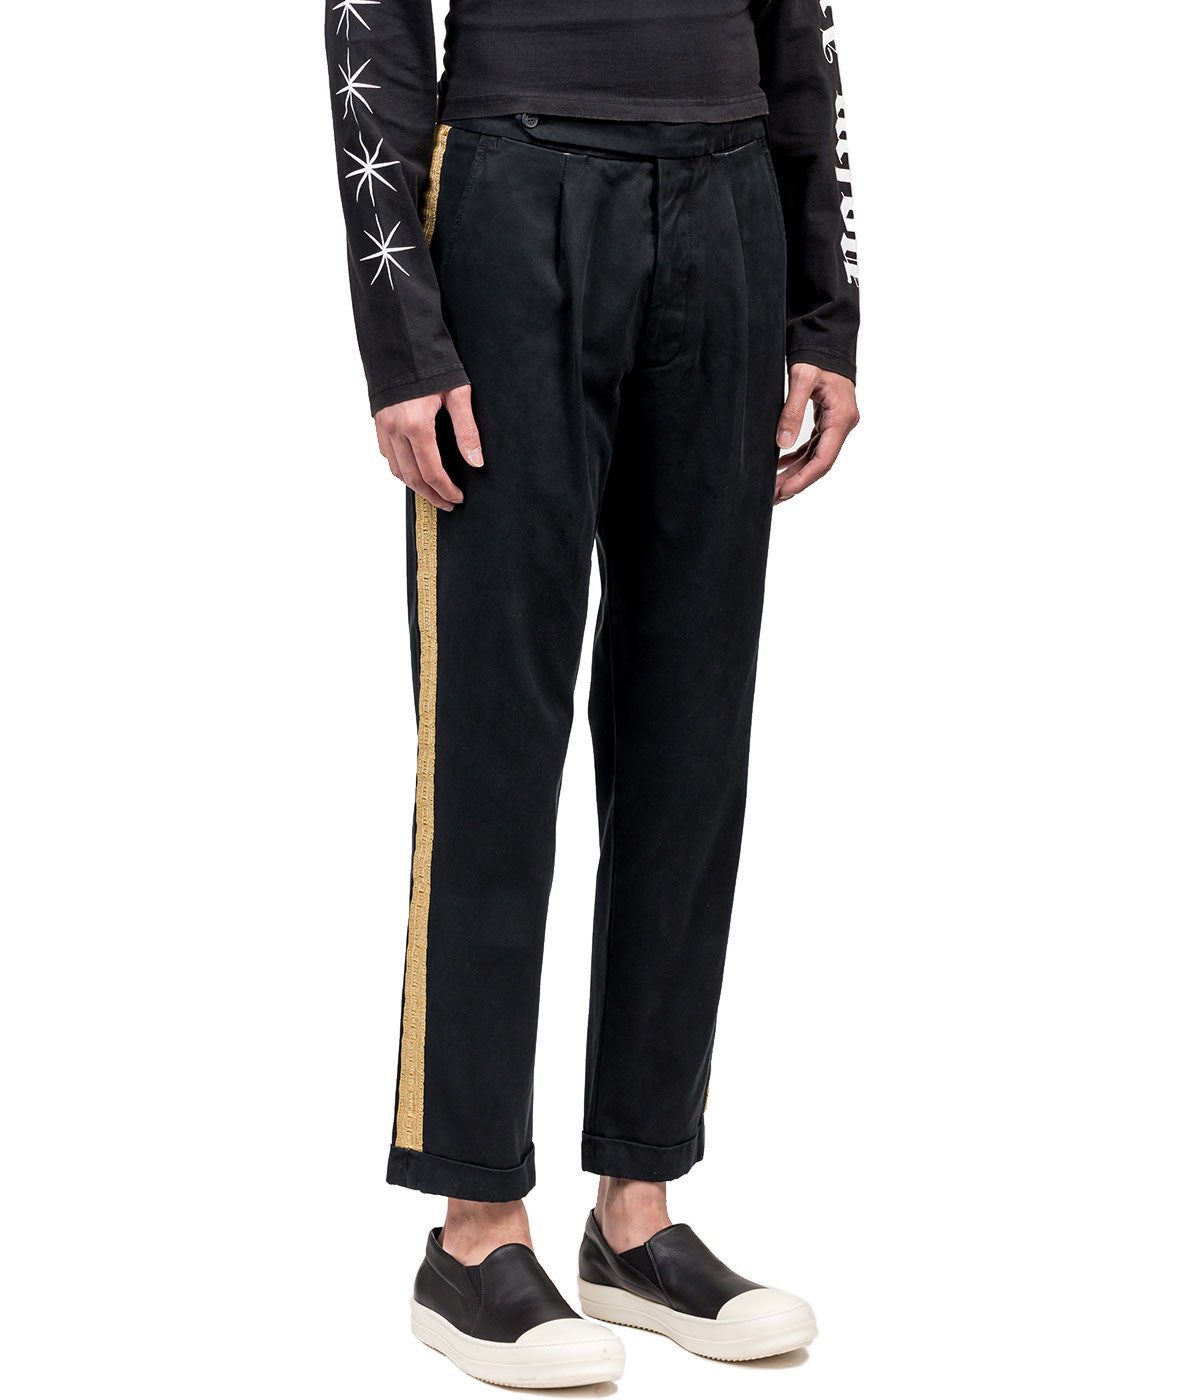 Black Gold Classic Trousers